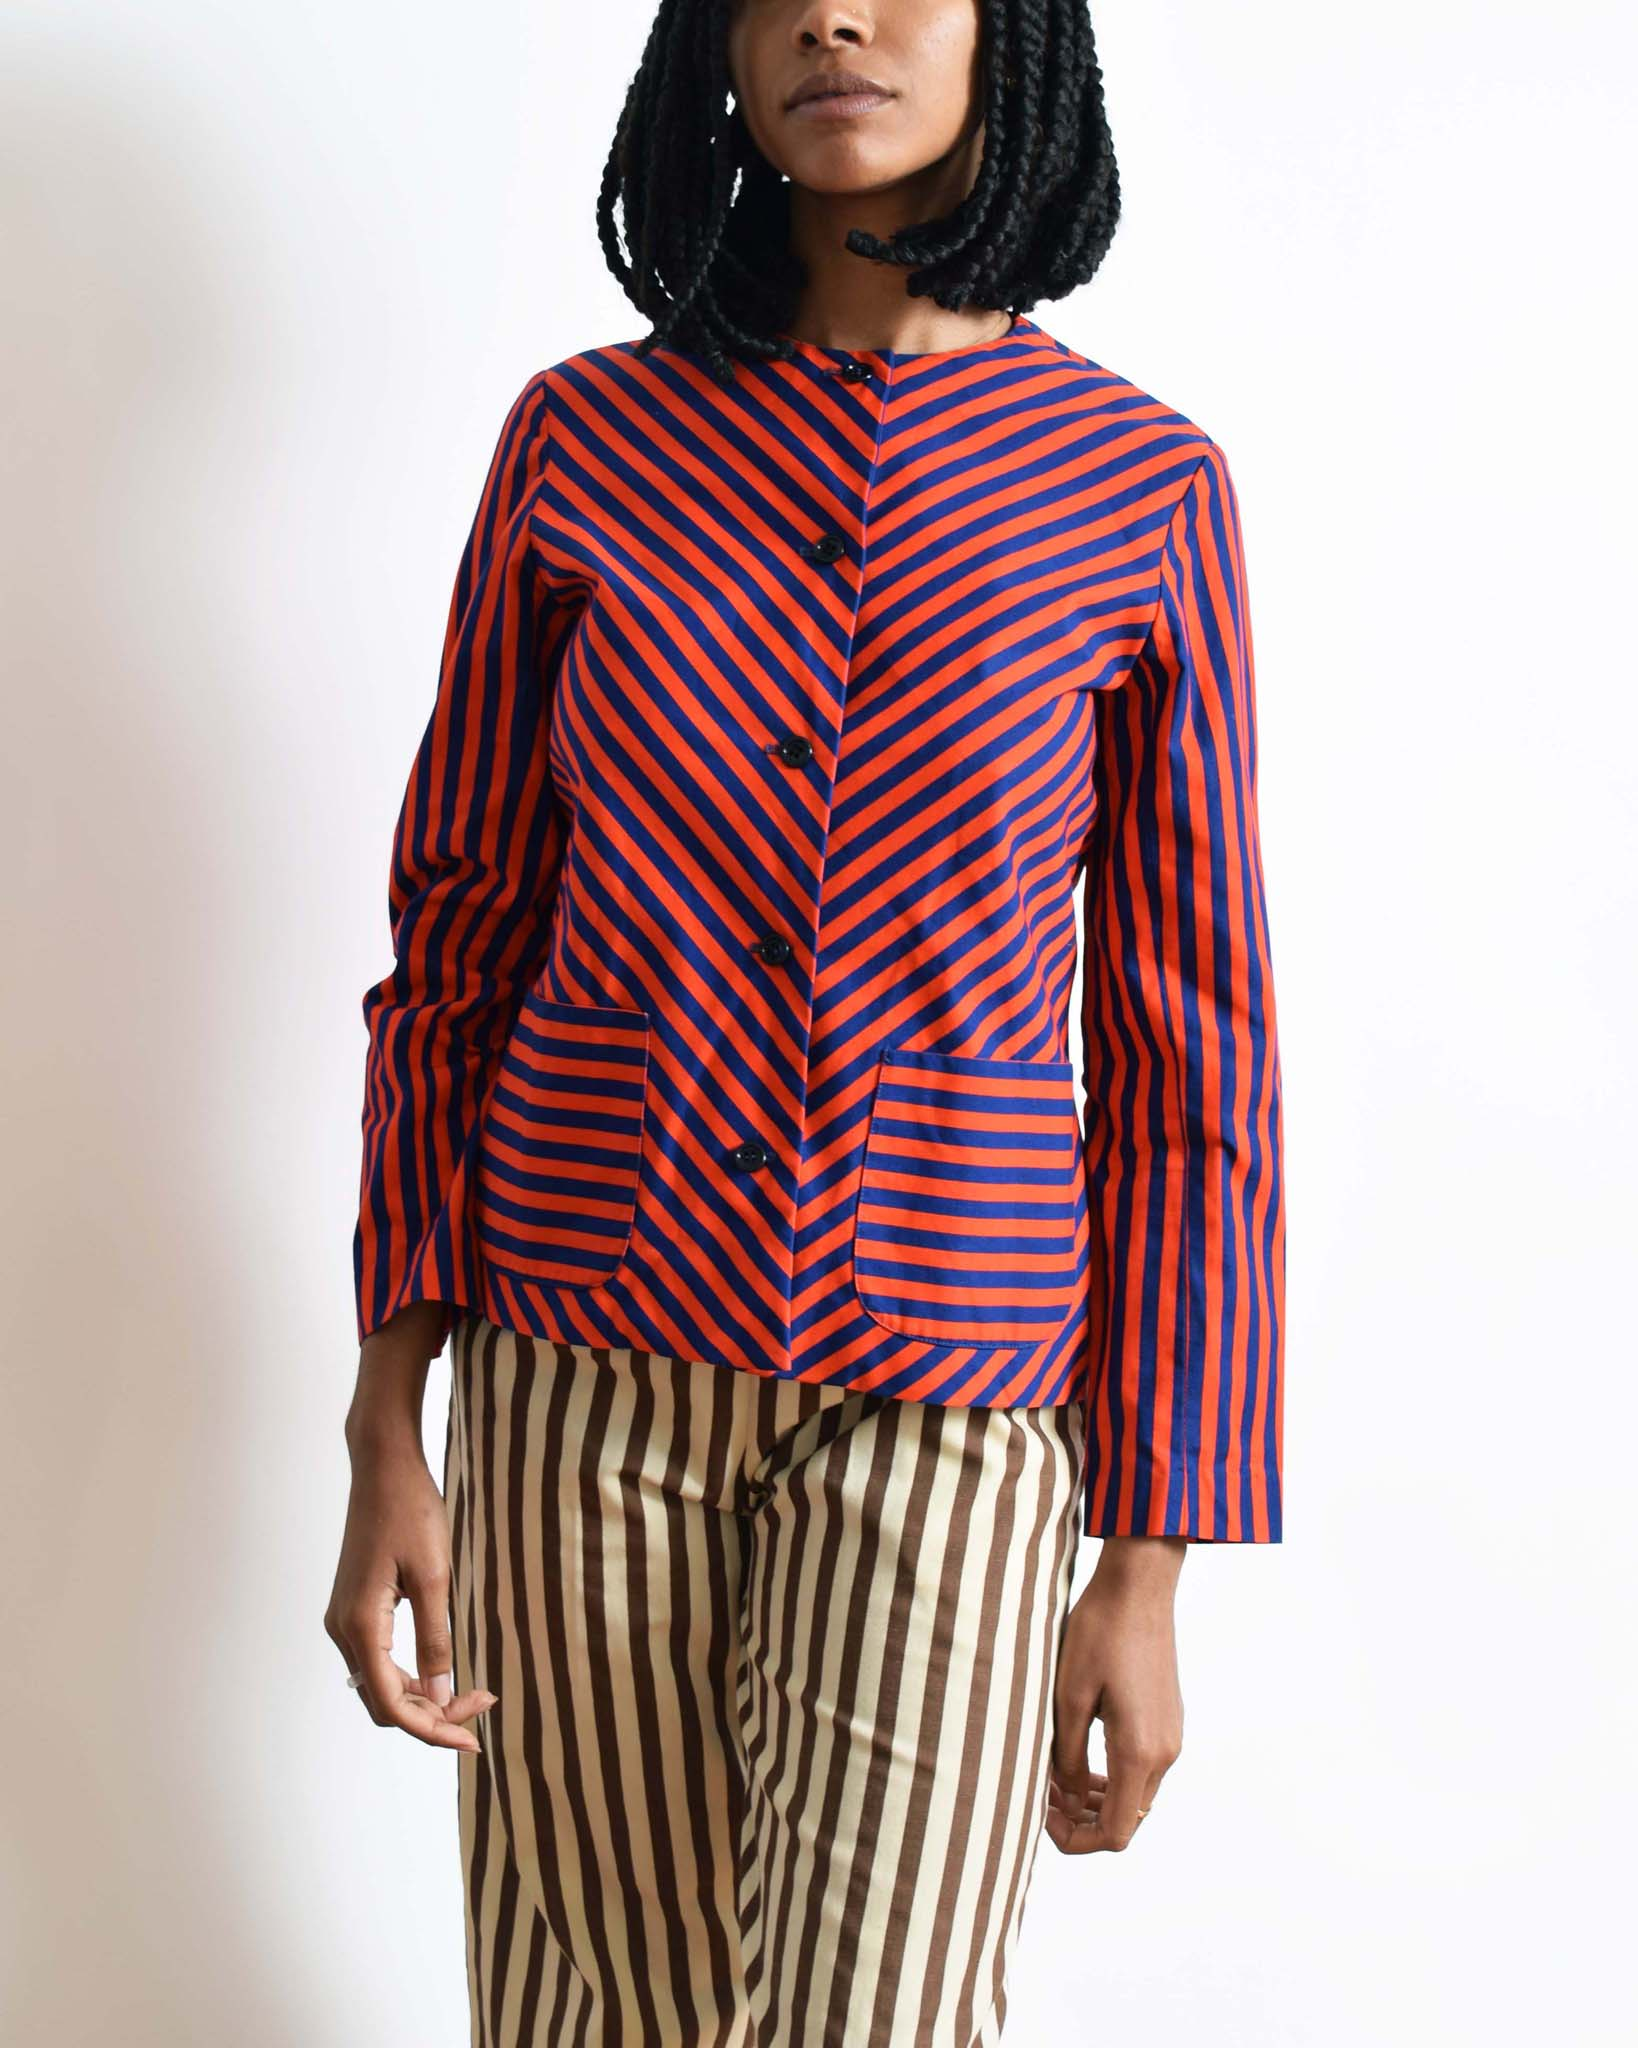 Vintage 1960s Chevron Stripe Jacket